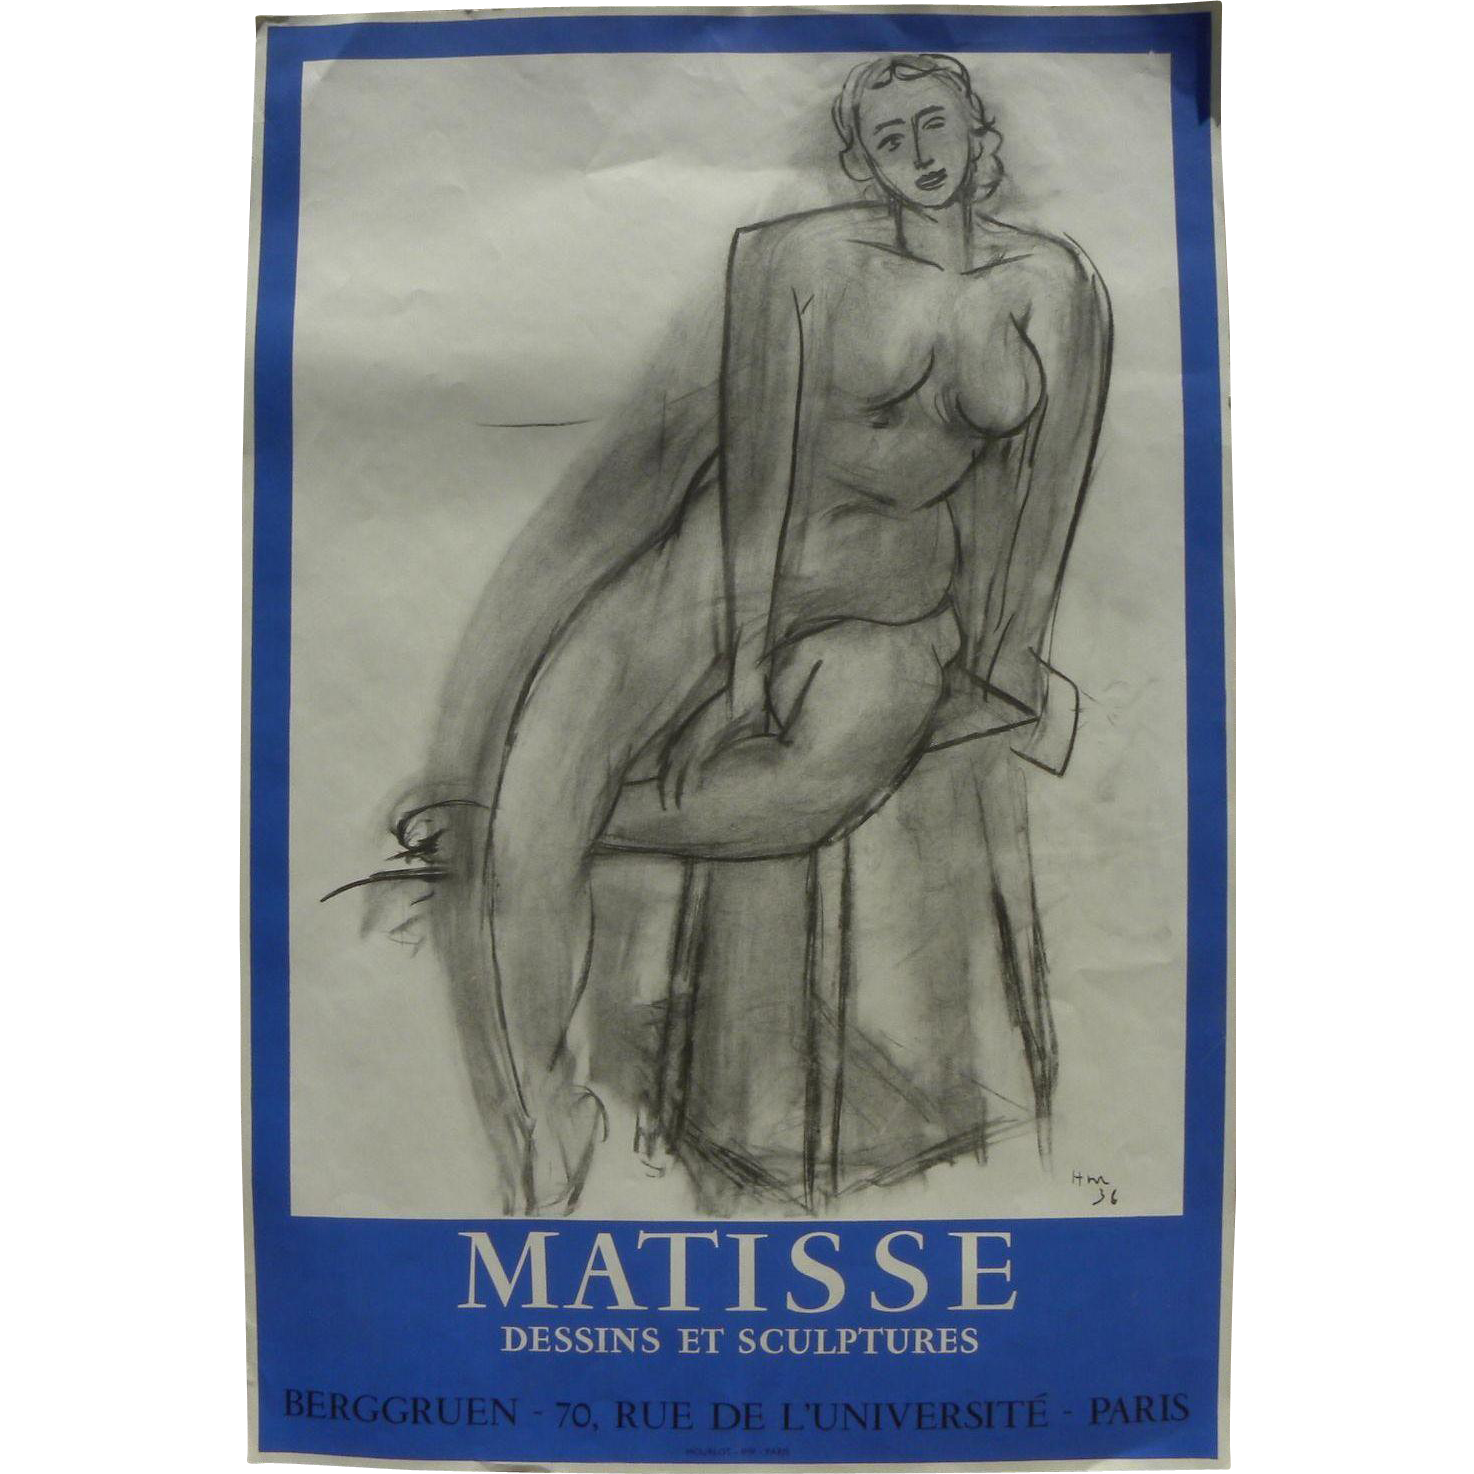 Original 1956 Mourlot-printed lithograph poster after a 1936 charcoal drawing by the famed French 20th century artist HENRI MATISSE (1869-1954),